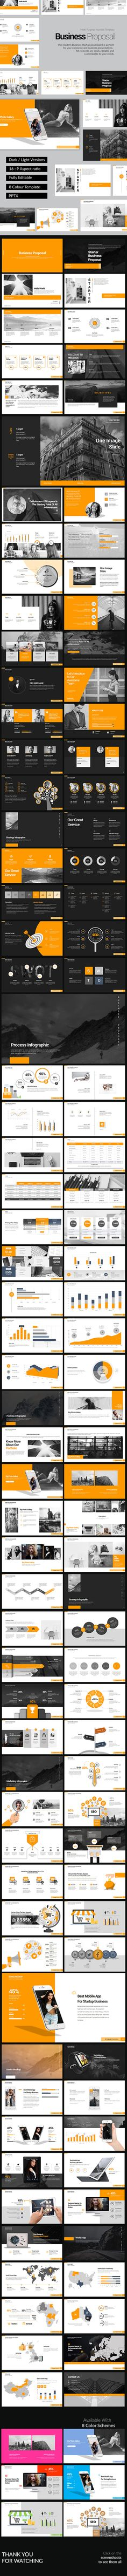 Business Proposal PowerPoint Design Template - PowerPoint Templates Presentation Design Template. Download here: https://graphicriver.net/item/business-proposal-powerpoint-template/19321690?ref=yinkira